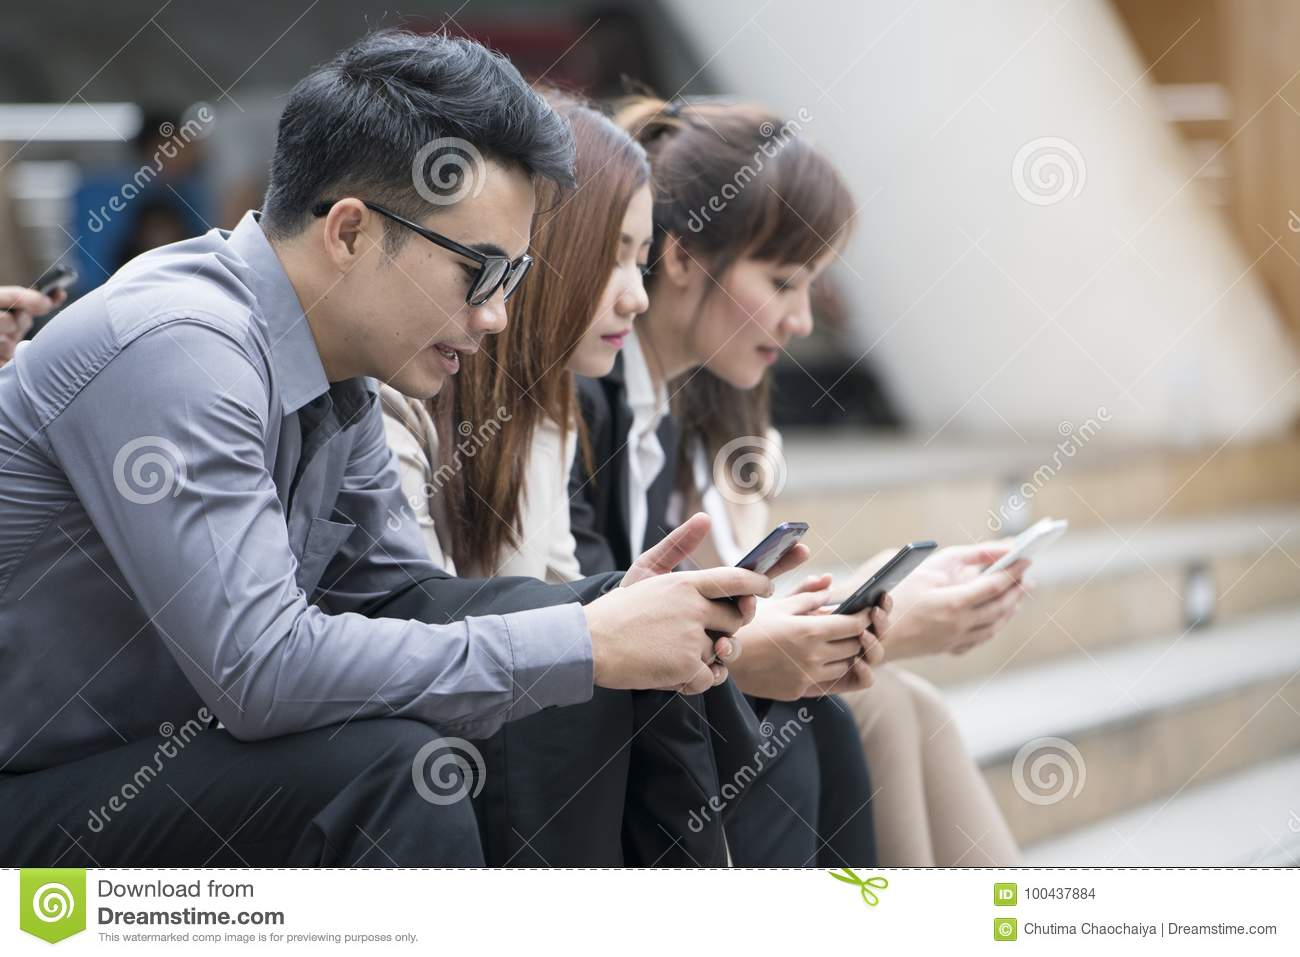 Close up of businessmen and businesswomen using smartphone